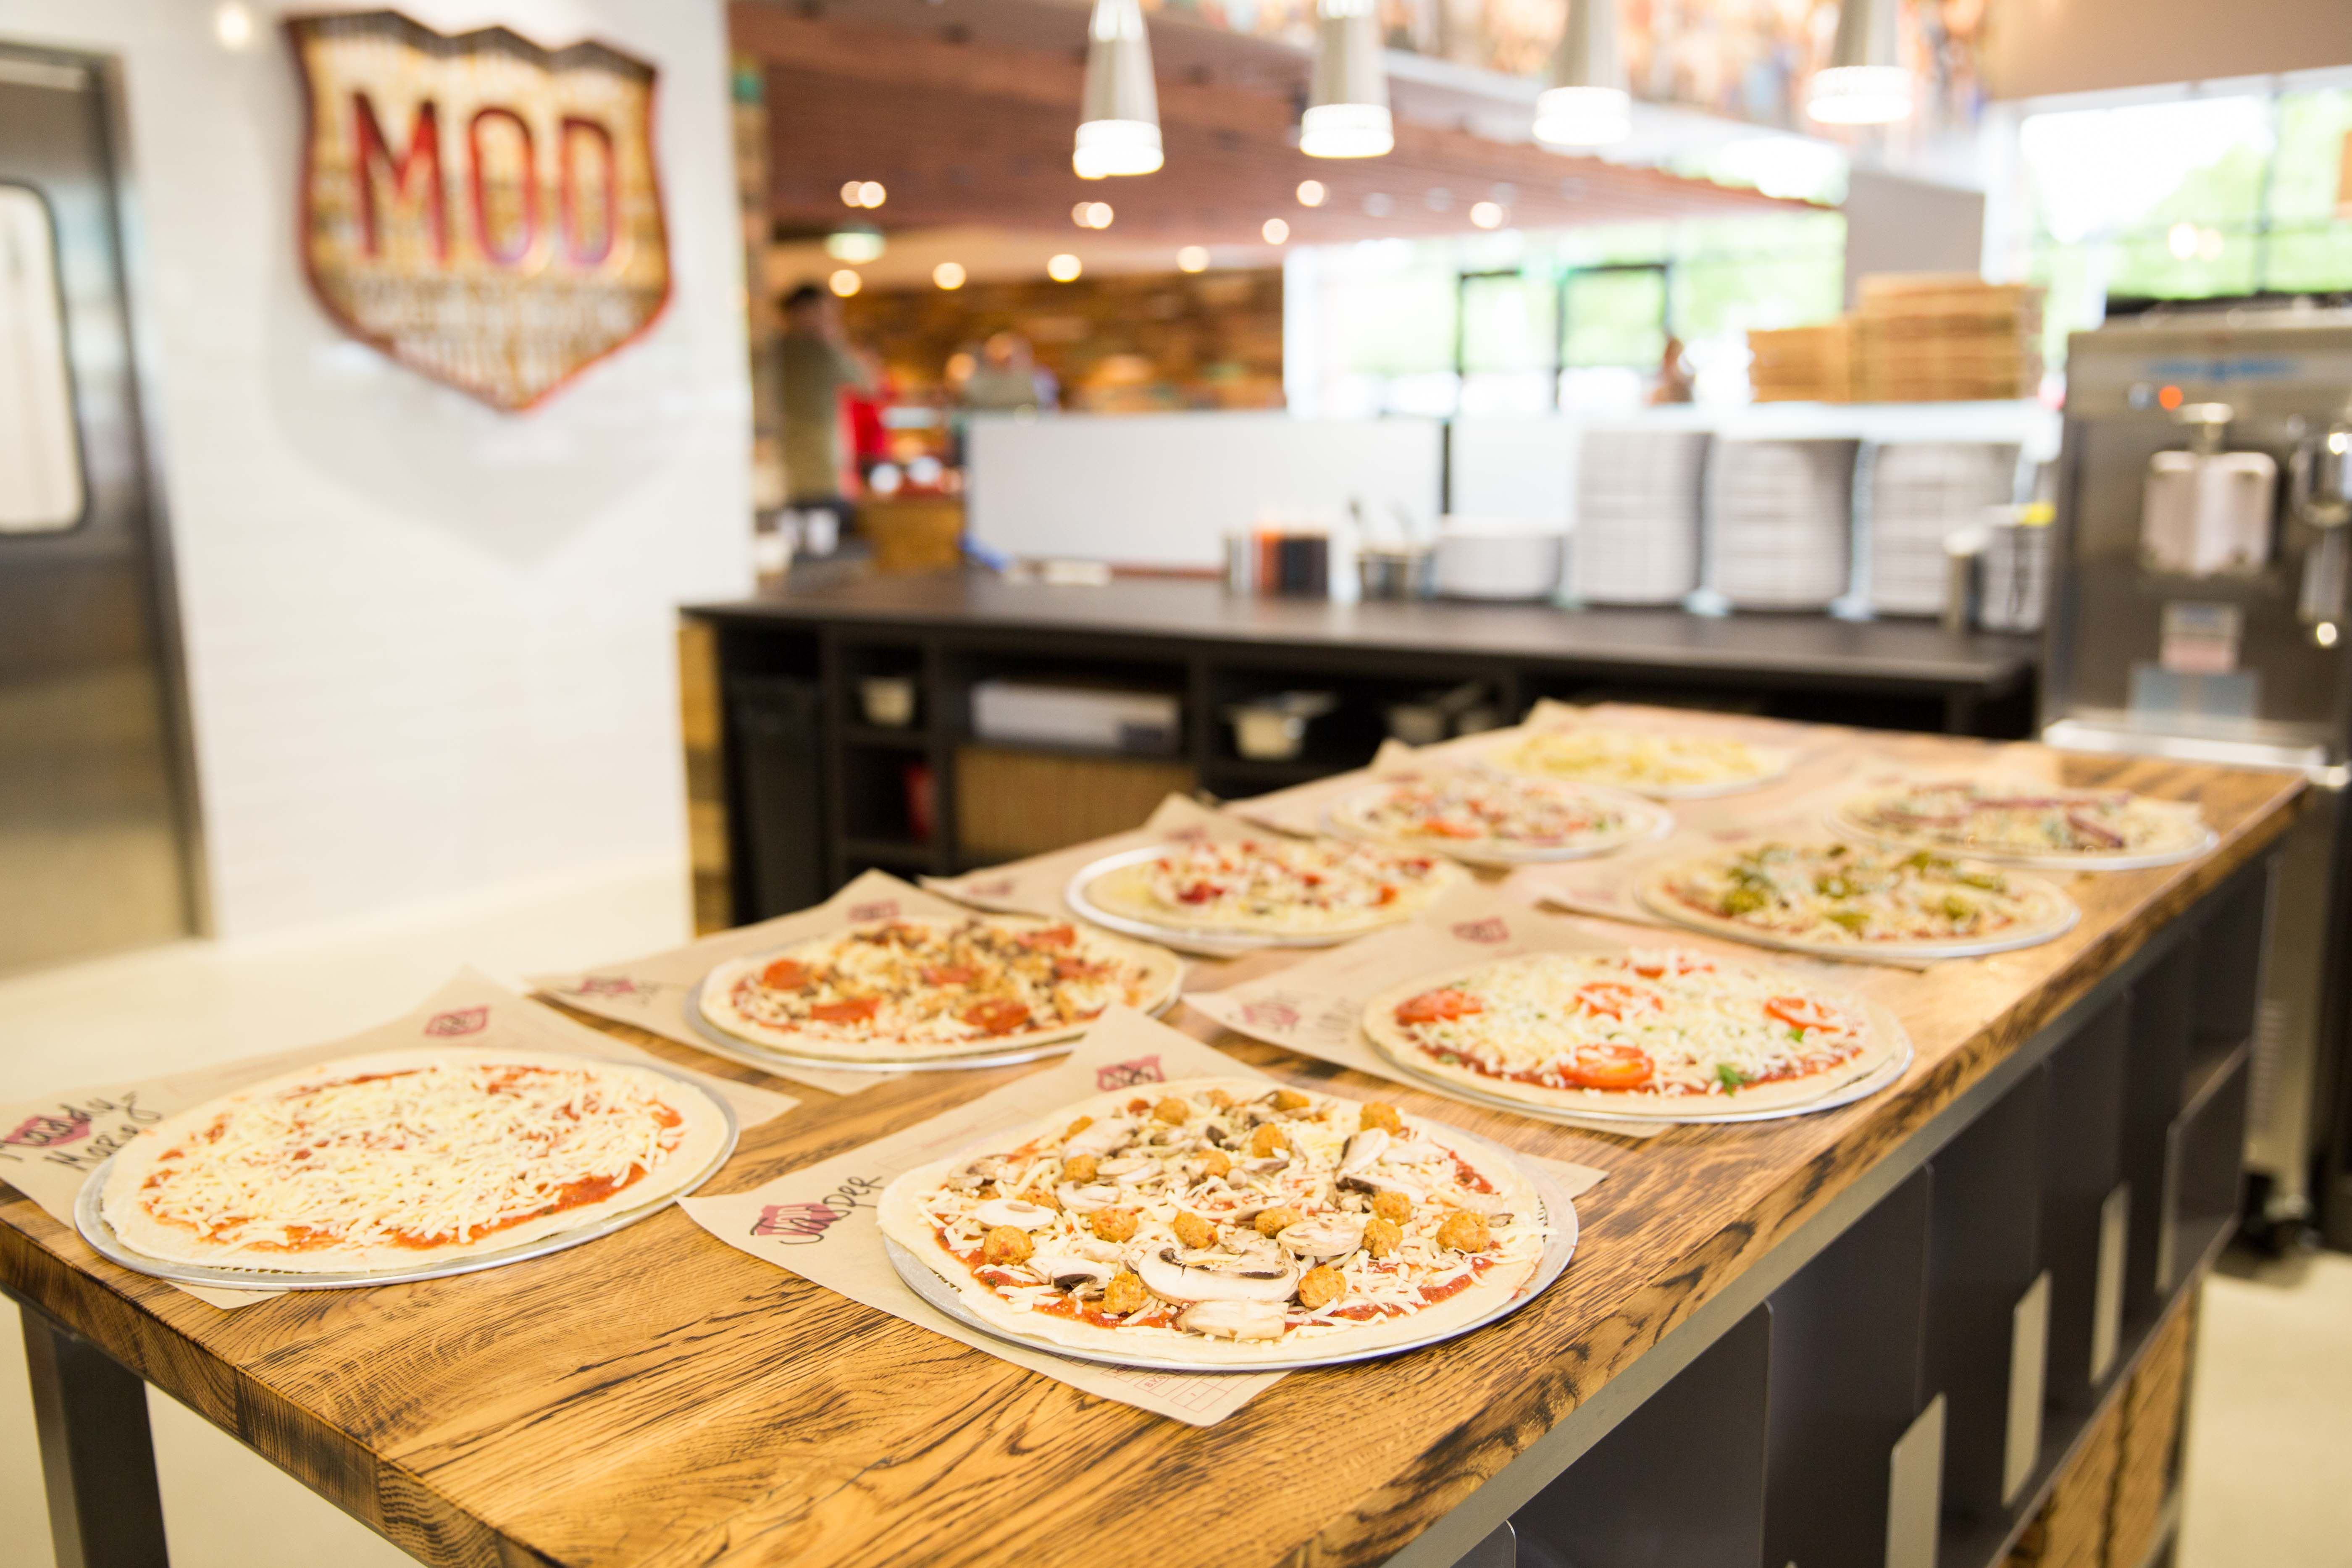 Cov Students Mod Pizza Is Giving Out Free Pizza Next Week